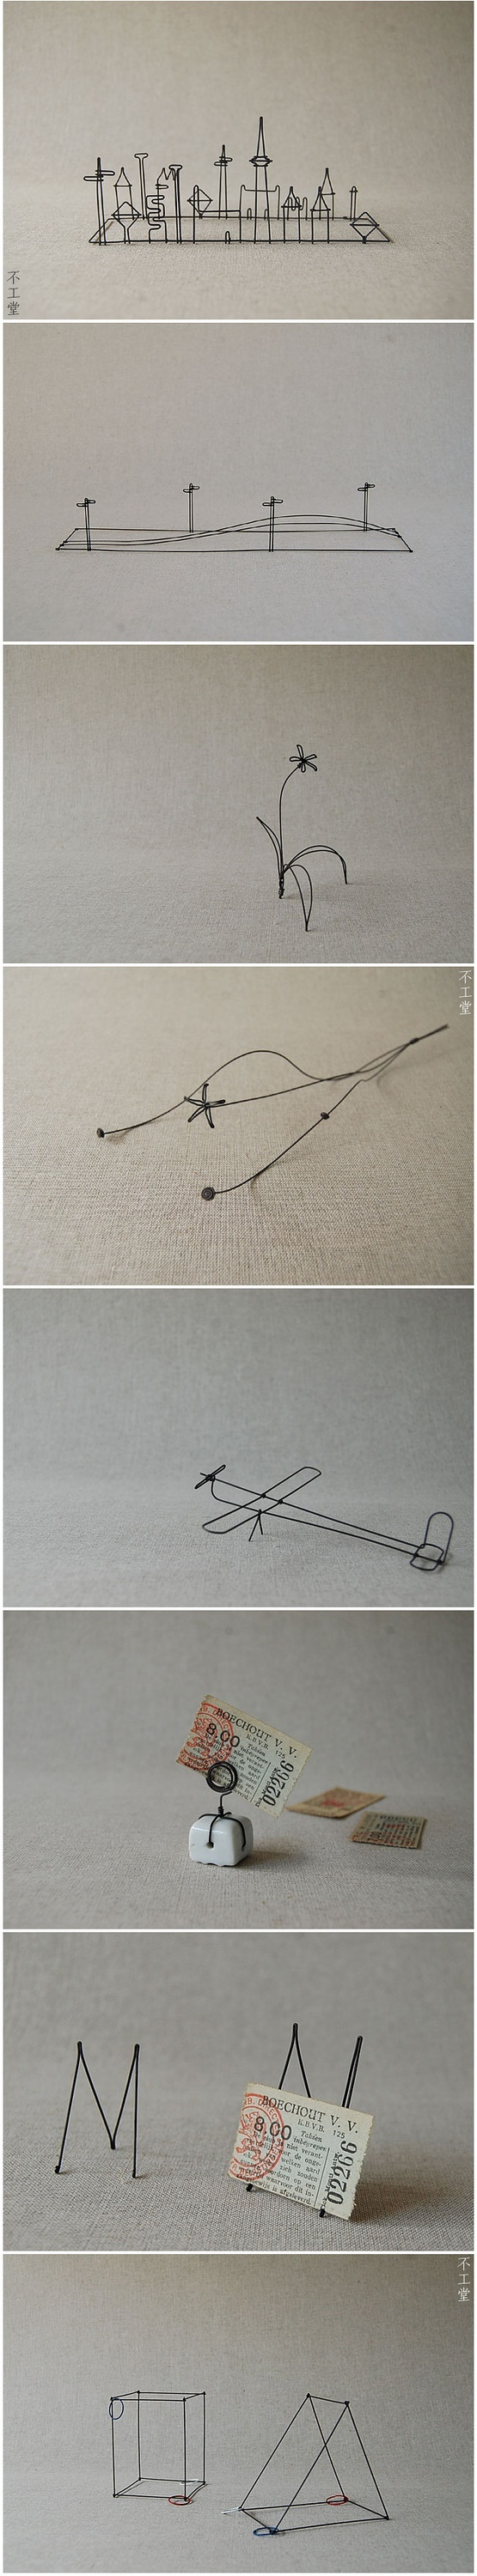 love these really wanna try making one of my drawings into a wire sculpture